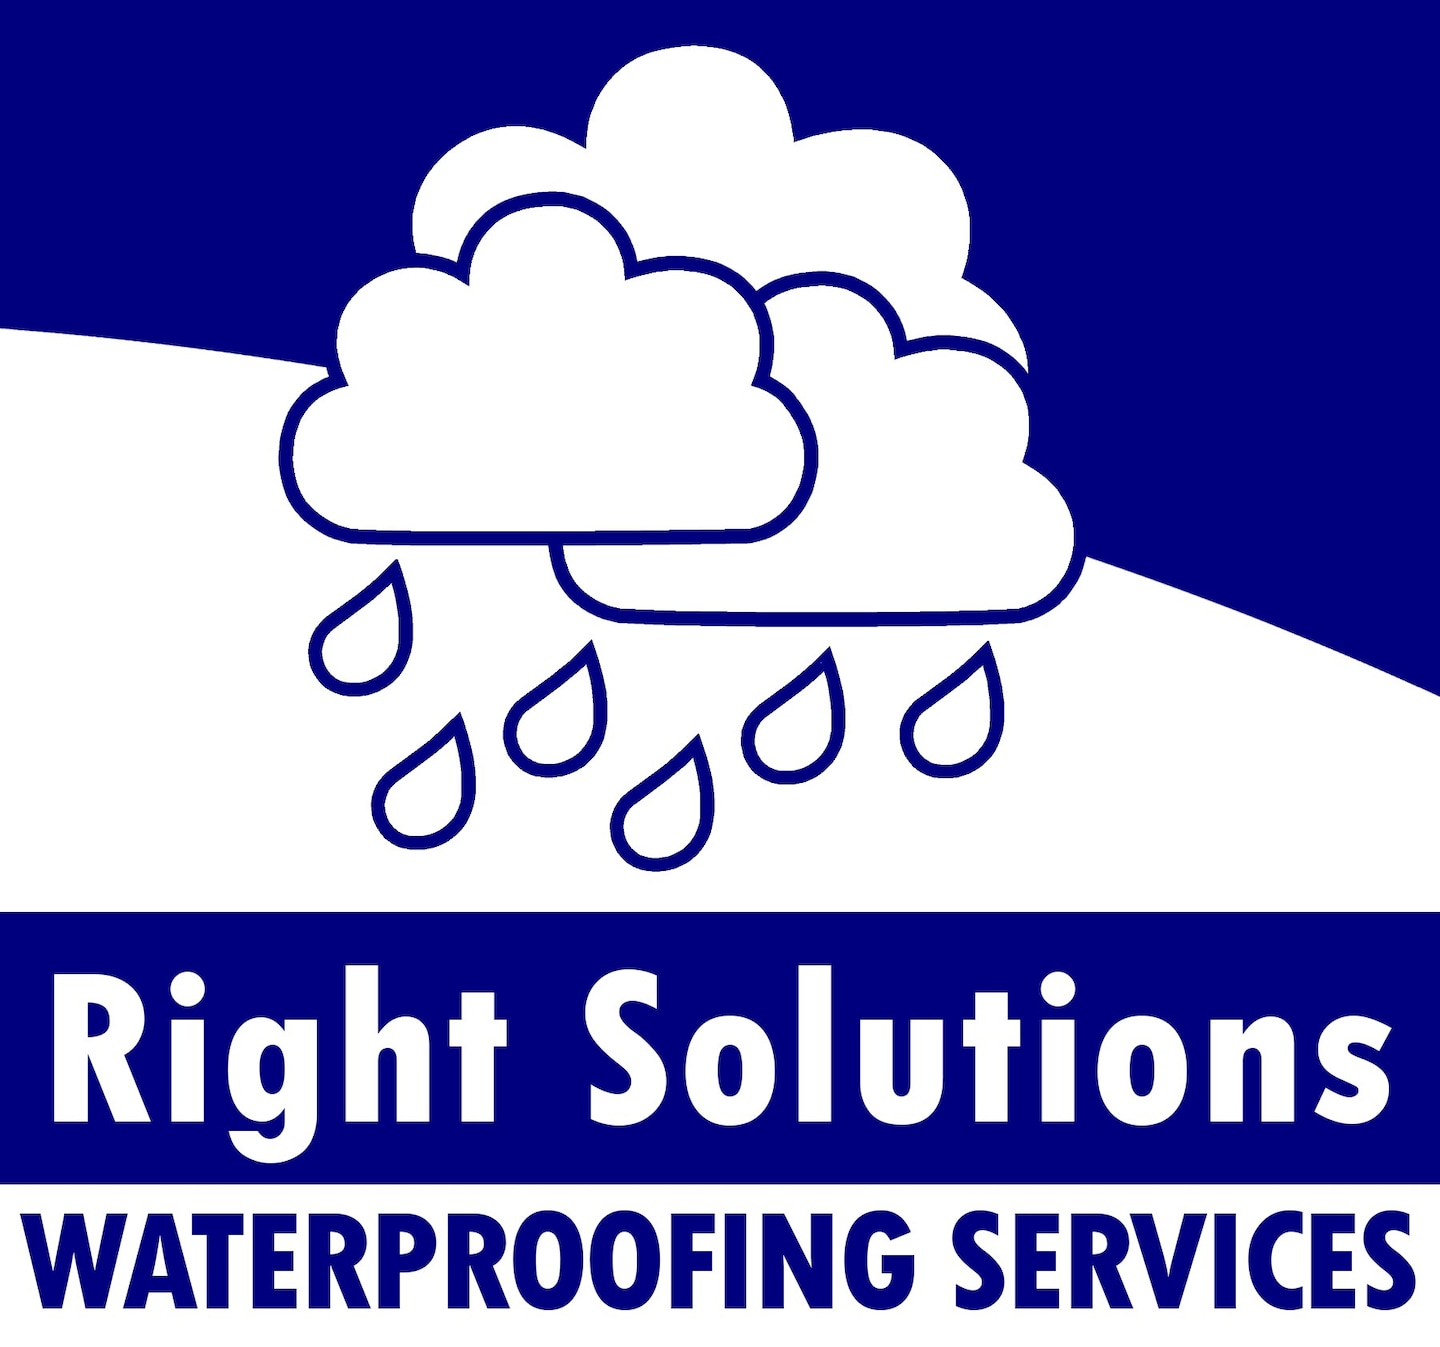 Right Solutions Waterproofing Services